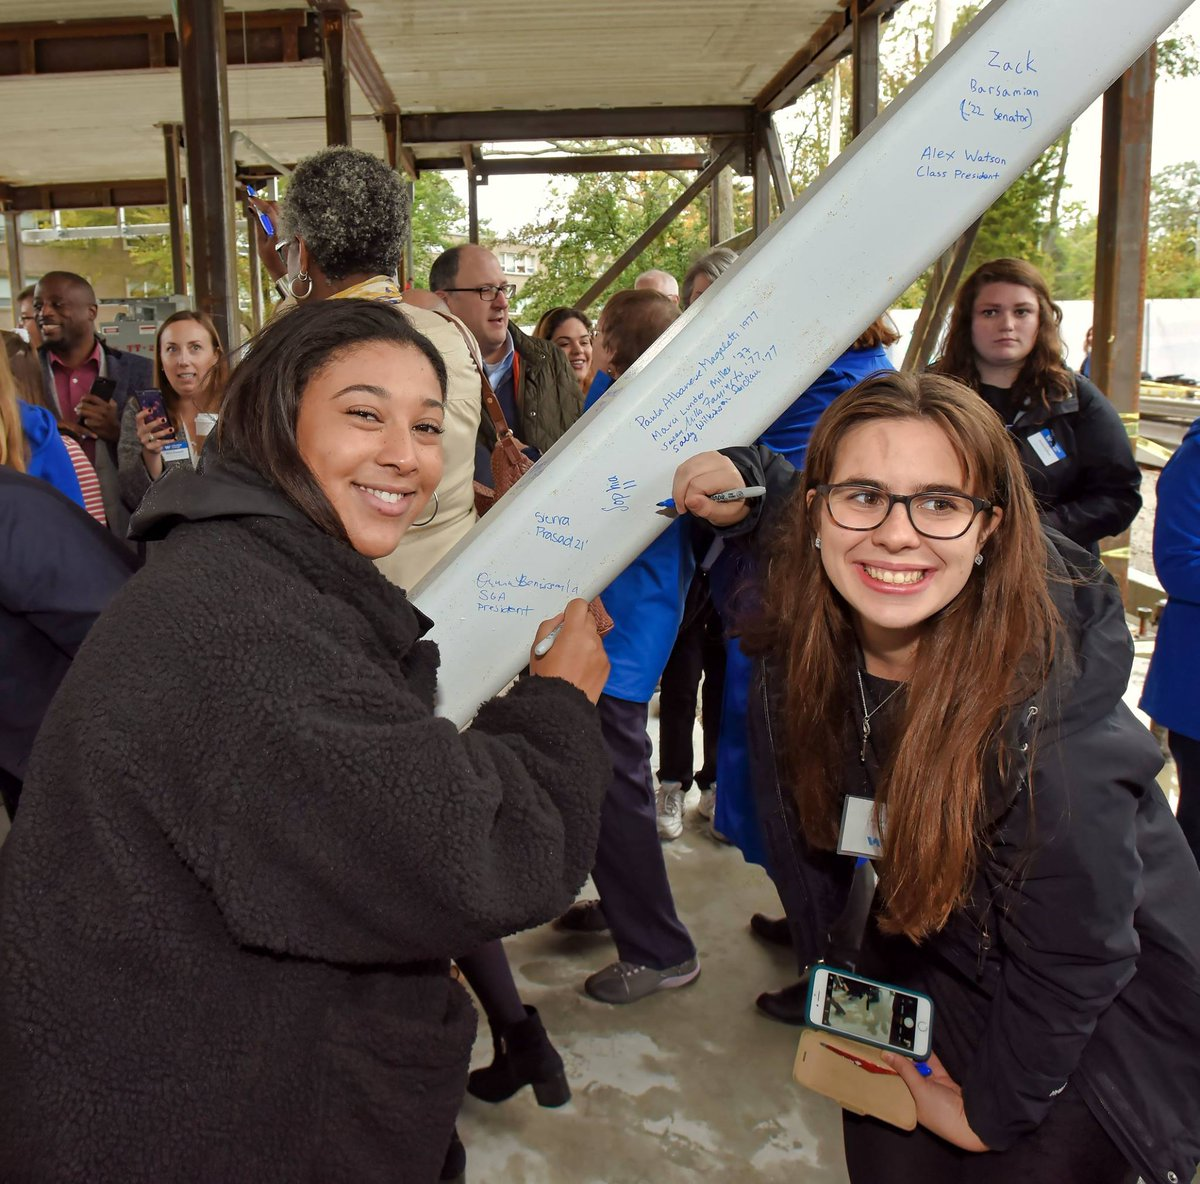 Students, alumni, parents, and other members of the Wheaton community had the chance to sign their names on beams inside Wheaton's new residence hall, currently under construction.  @SGAarch https://t.co/uQKZzyZuQt